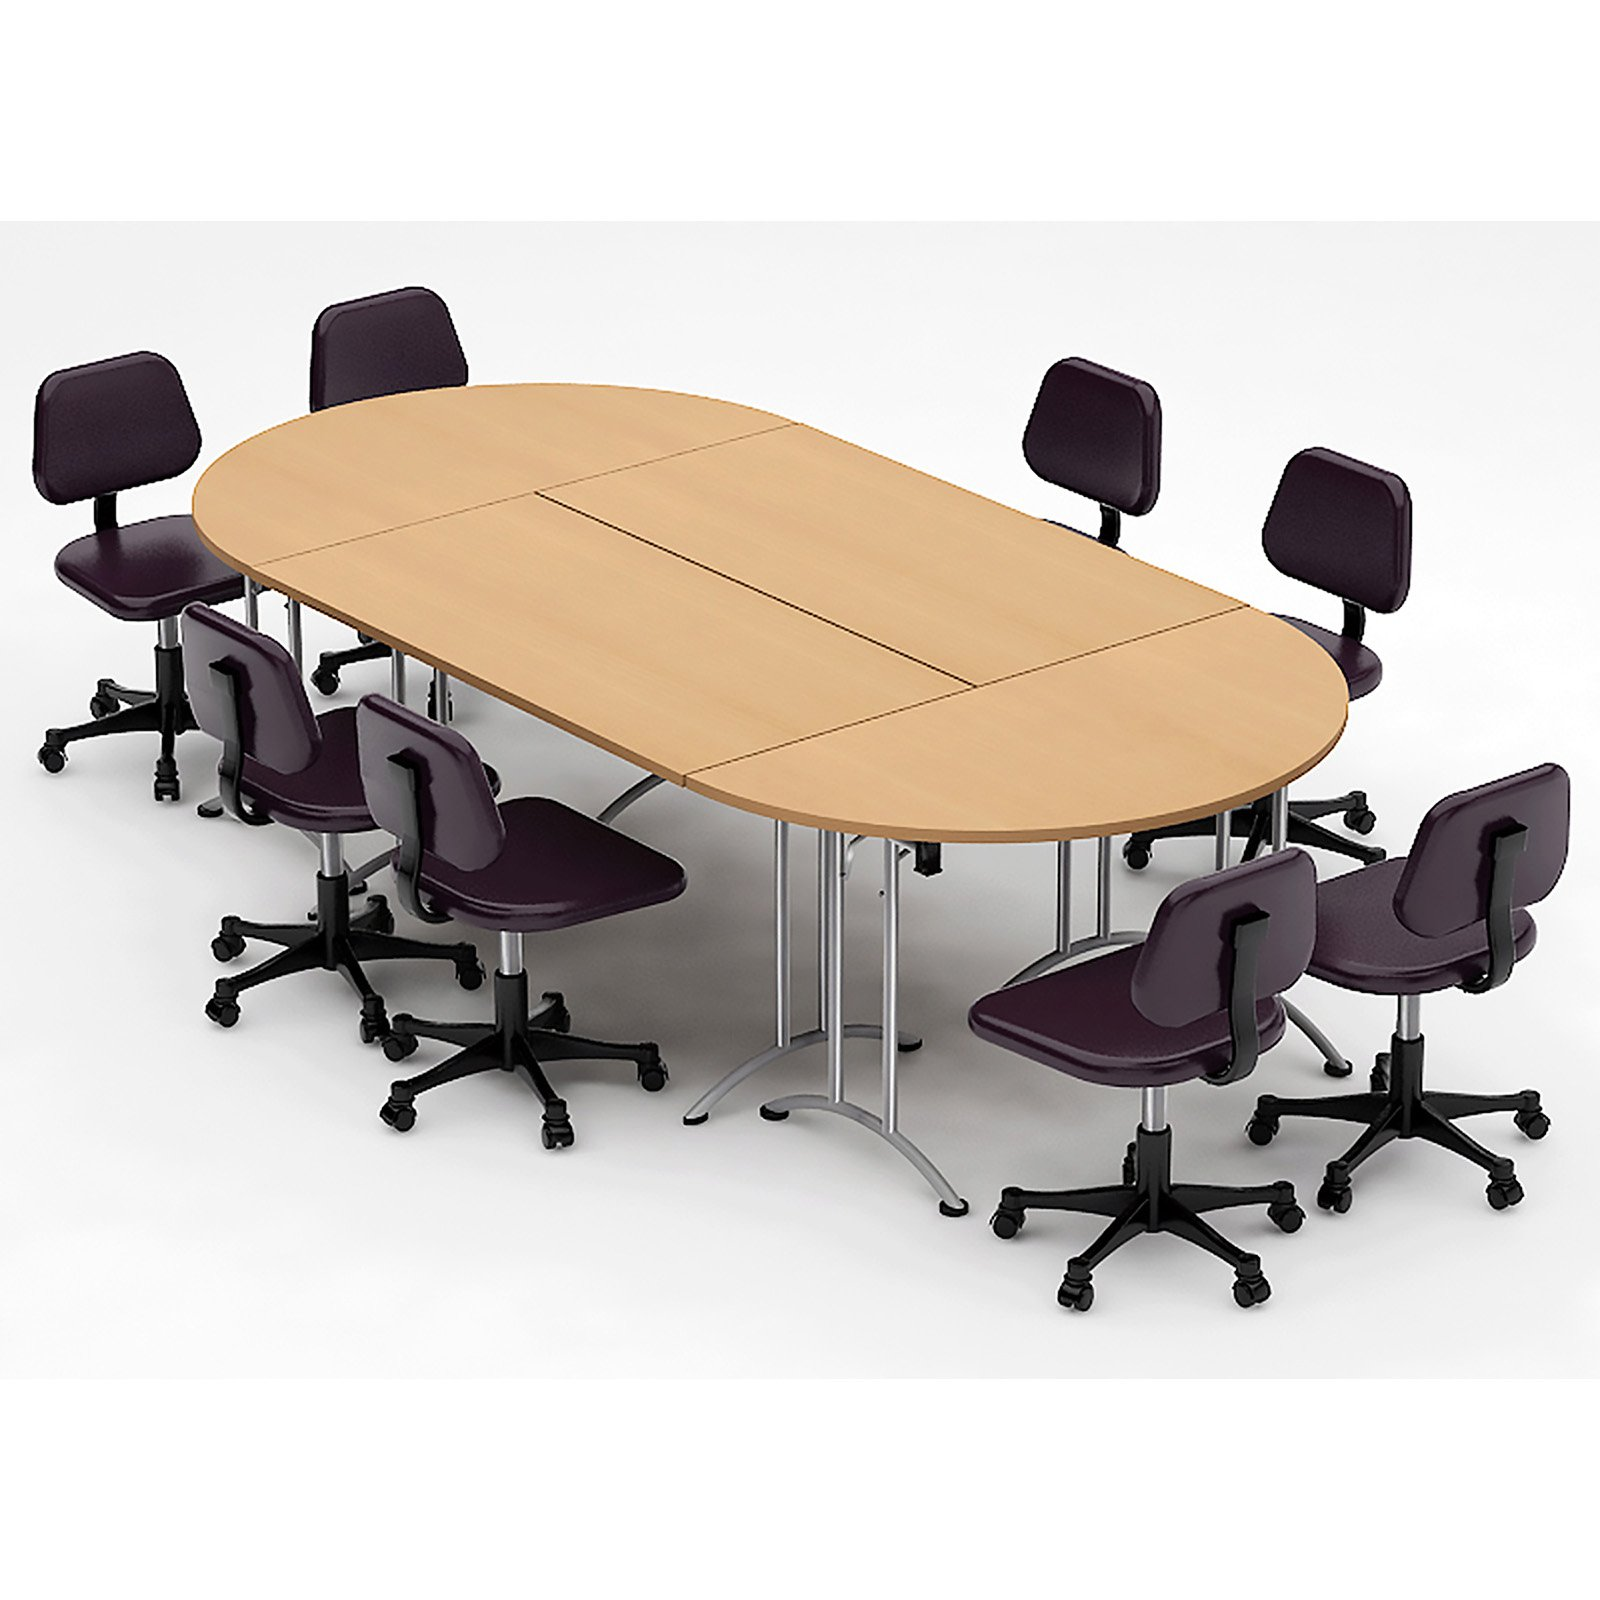 HARDY CONFERENCE TABLES Commercial Oval Seminar Table  Conference